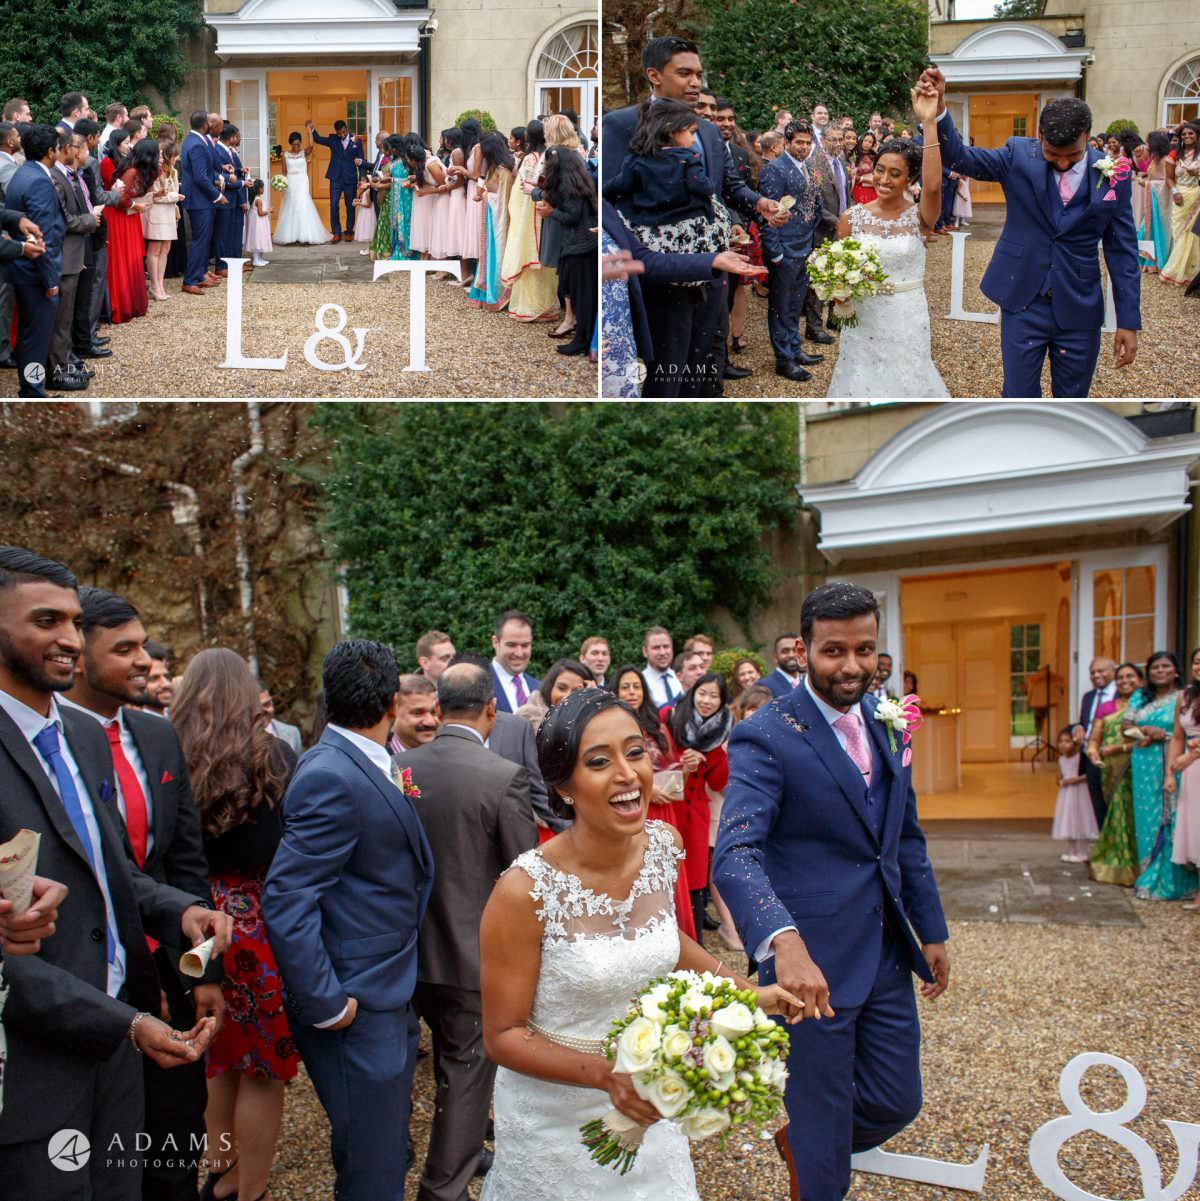 Northbrook Park Wedding Photography | Twa + Len 17